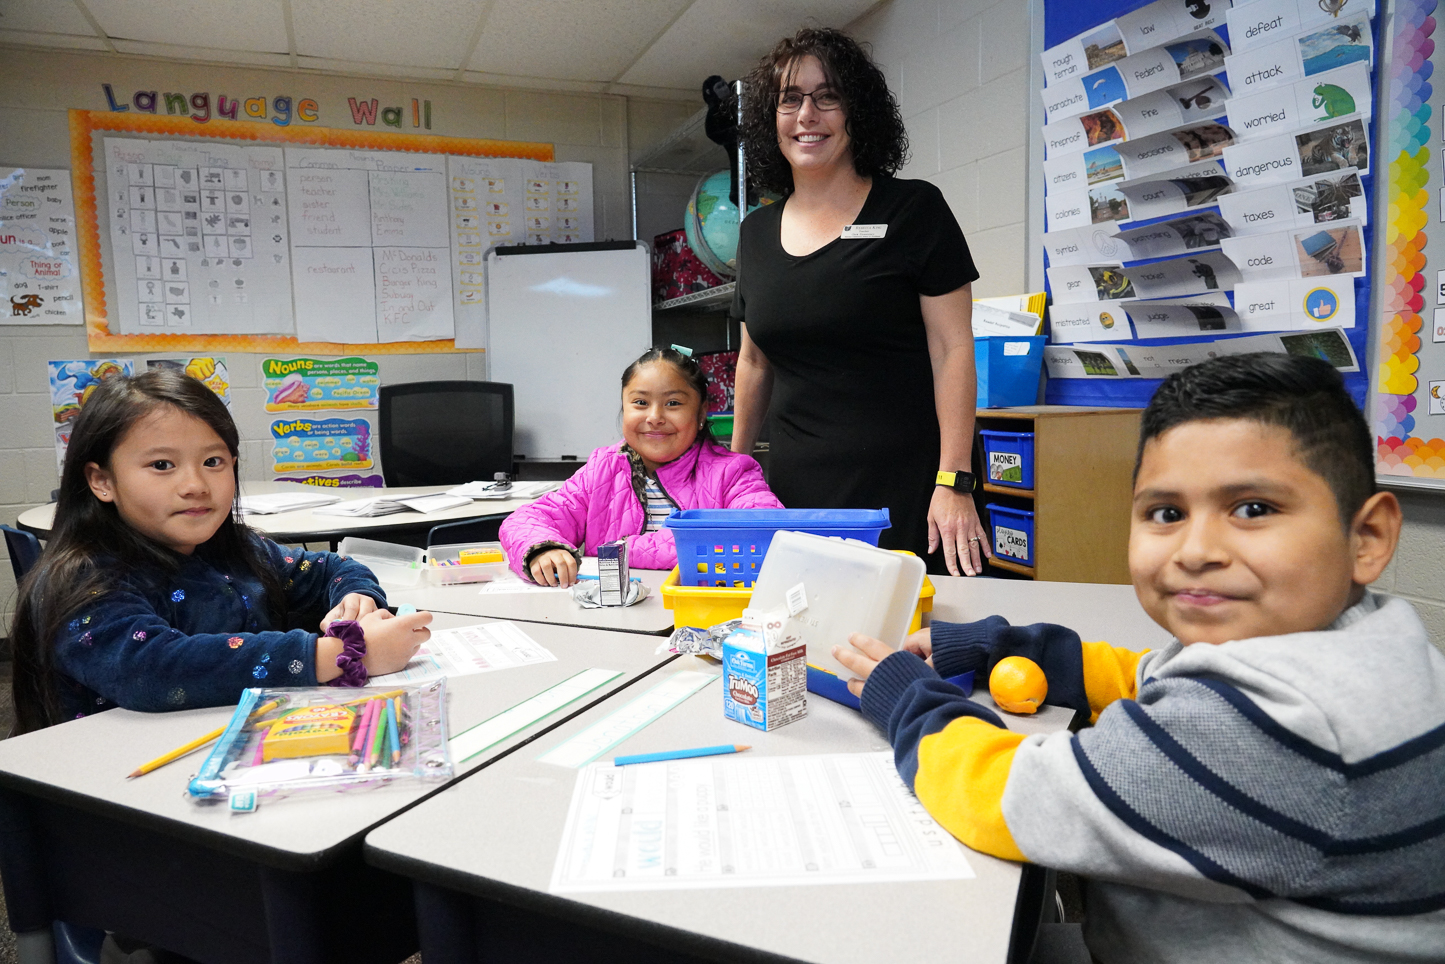 "Roy Clark Elementary -  Rebecca King, 2nd Grade/5th Grade  Second grade teacher Rebecca King has been named Roy Clark Elementary Teacher of the Year for 2019-2020. She has been with Union since 2015.  (She started the year as a fifth grade teacher but took over a second grade class as enrollment numbers changed at Roy Clark.)  ""Growing up I knew I wanted to be a teacher,"" King said.  ""When my teachers cleaned out their files at the end of each school year, I always jumped in to take their extra copies home.  I often played school with my stuffed animals.  In elementary school, the special education students were in their own classrooms in our building.  In 5th grade, as a safety patrol, we could volunteer to spend our recess time with these students.  I always enjoyed working in these classrooms. In high school, I changed my mind and thought I wanted to be a speech pathologist.  While I was working on my master's degree, I missed the classroom and always had ideas geared for teaching a class. I changed my degree plan and was much happier.  Nineteen years later, I still enjoy seeing what children can do.: 	 King's favorite subject to teach is math.  ""I love math because there are so many different ways to get to a solution. Over the years I have heard many students – and their parents – say ""They are not good at math and that's OK because some people just aren't.""  I want to change the mindset from it is ok to not be good at math to the mindset of everyone can be good at math<"" she said. ""I believe that everyone can be successful when they are exposed to a variety of strategies and positive messages.  Someone once said, 'To be a math person, you just have to be a person and do math'."" King's education background includes: •	Bachelors of Science – Speech Pathology – Oklahoma State University (1996) •	Early Childhood and Elementary Teacher Certification - Texas Woman's University (1999) ESL Certification (2019) •	Currently Working on Masters in Teaching, Learning and Leadership with an emphasis in Mathematics Education (Plant to graduate summer 2019) Oklahoma State University"